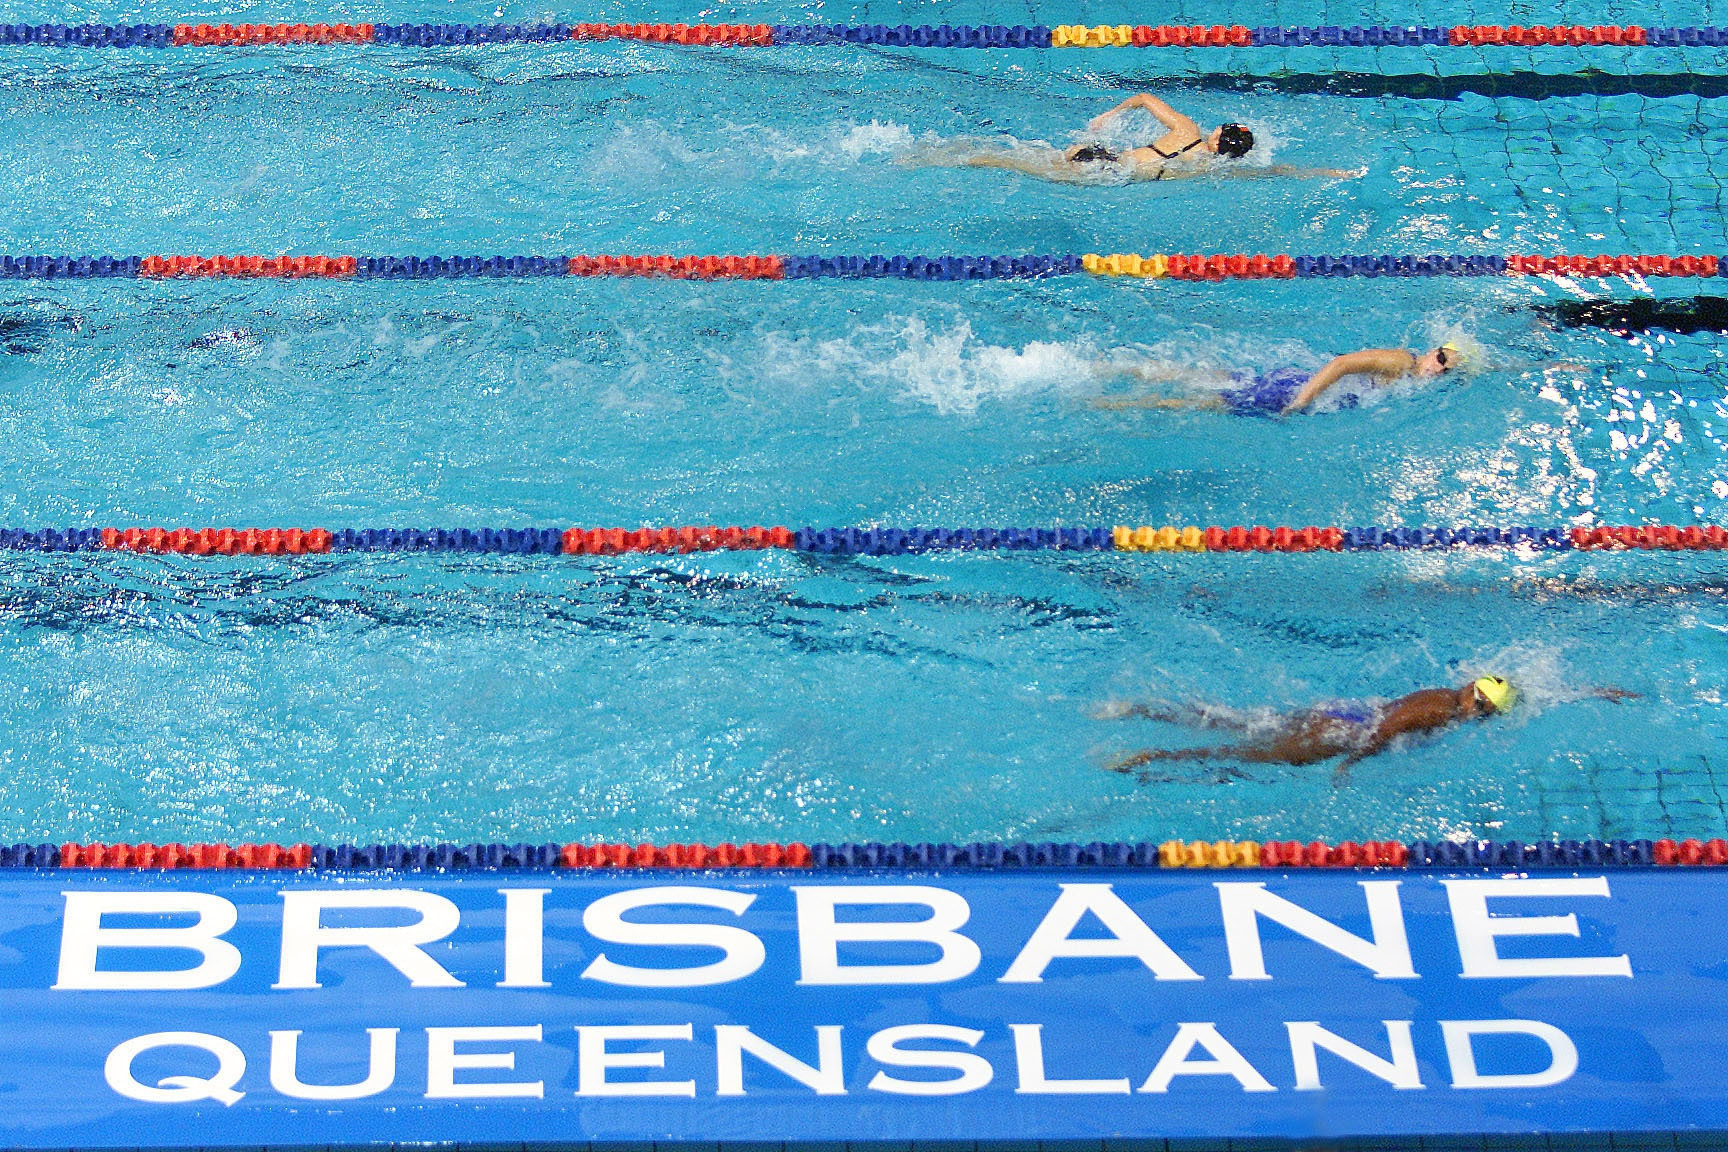 Former Australian swimming coach held in custody on historic child abuse charges